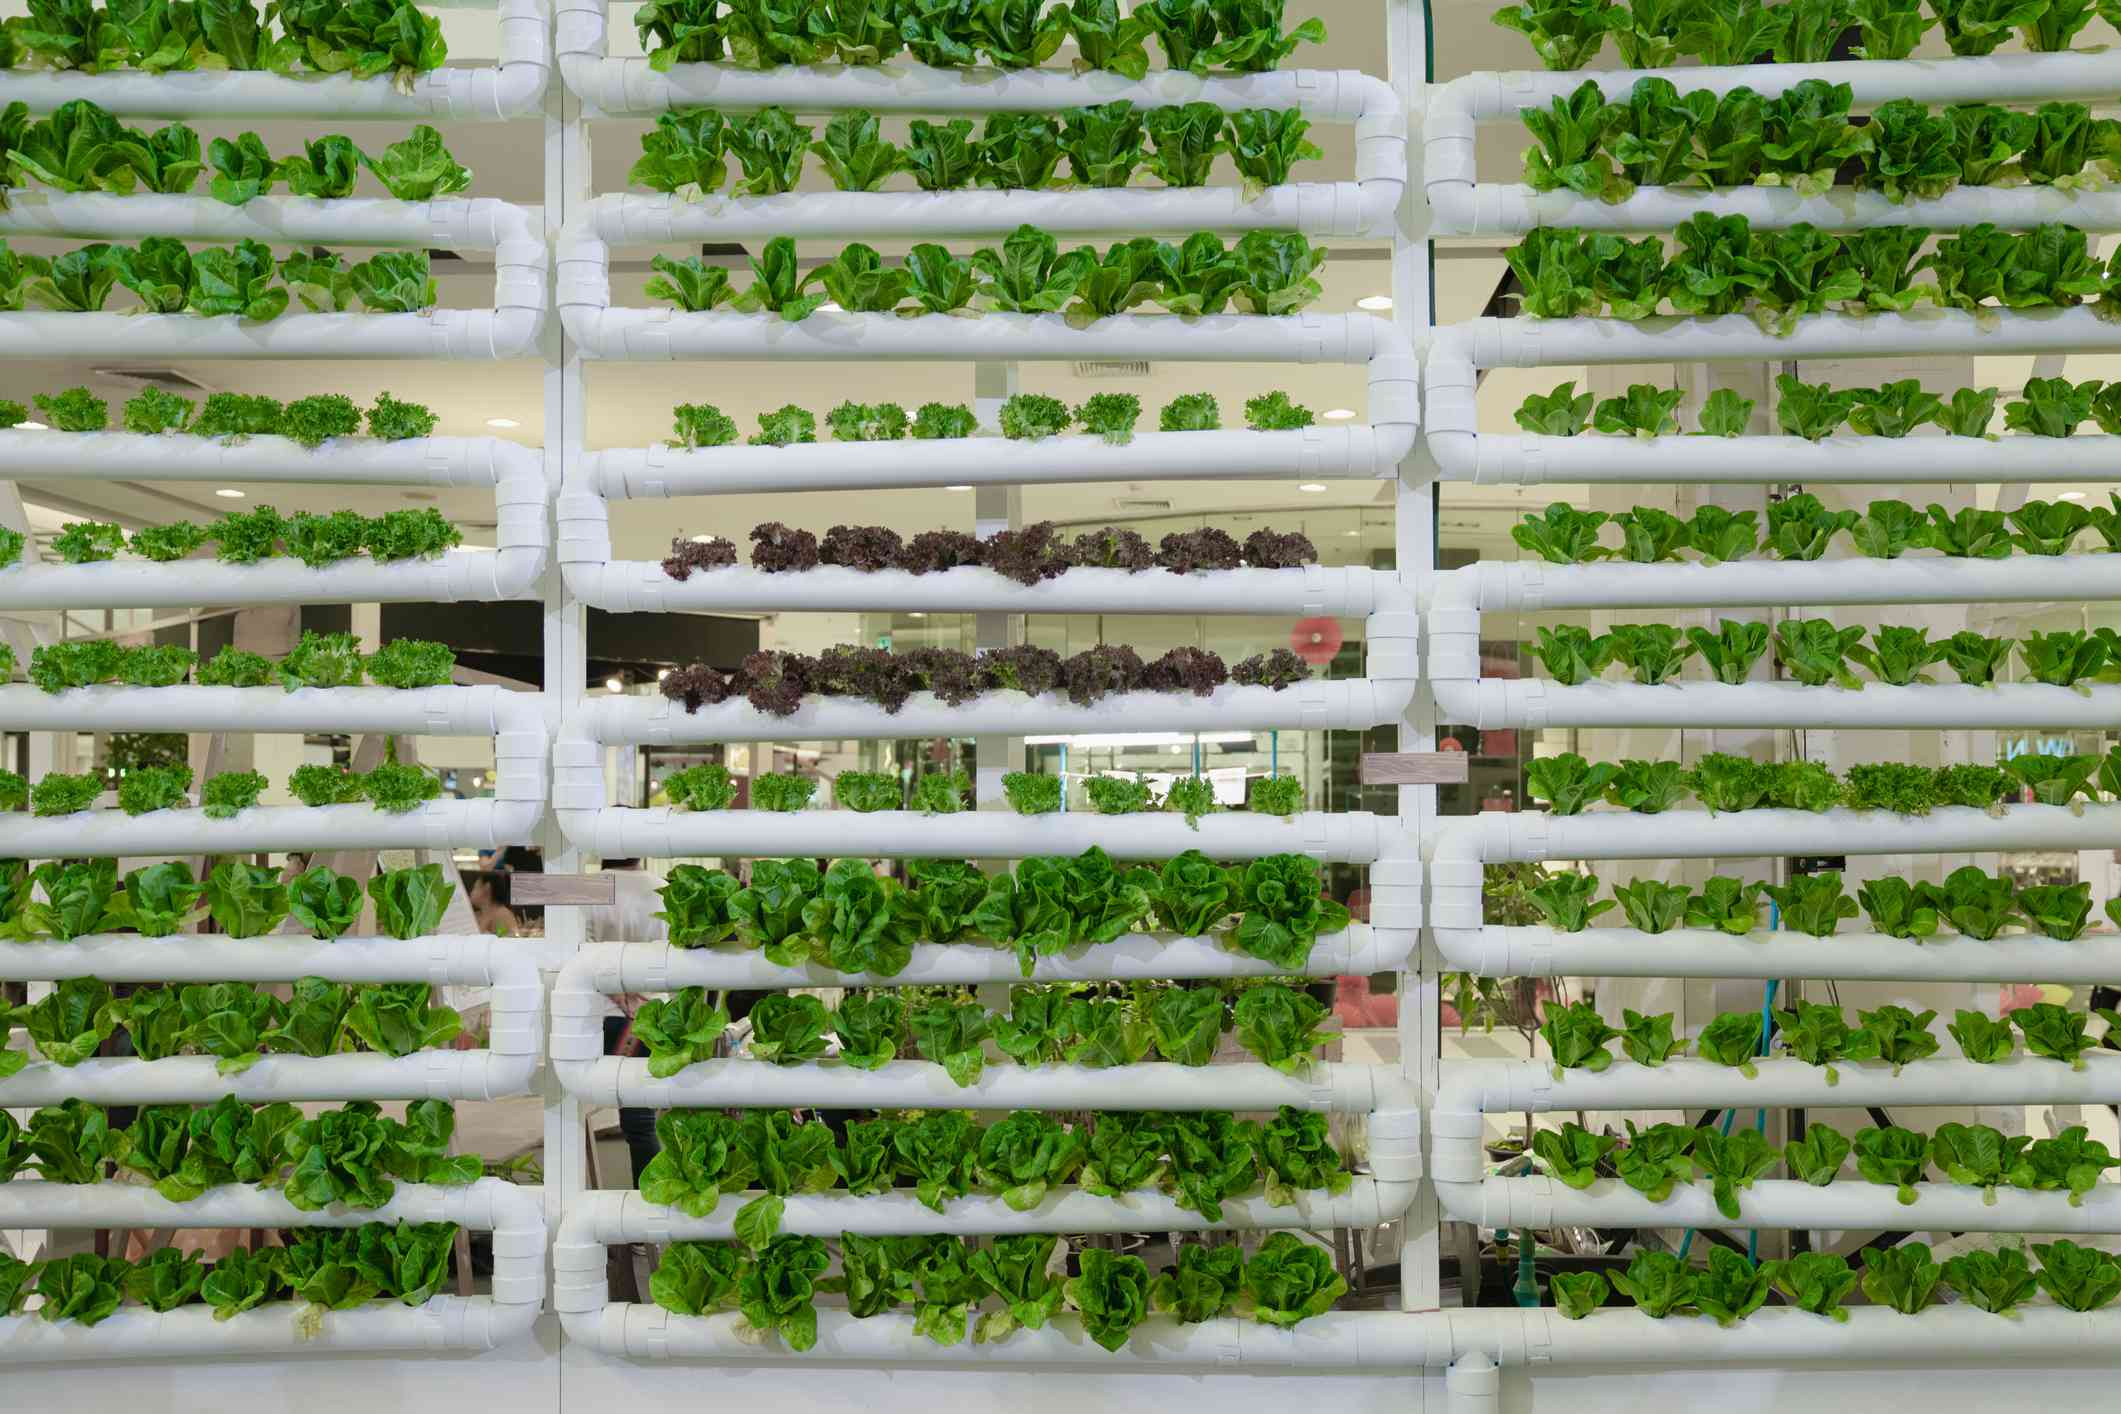 A vertical farm growing lettuce in hydroponics set up.